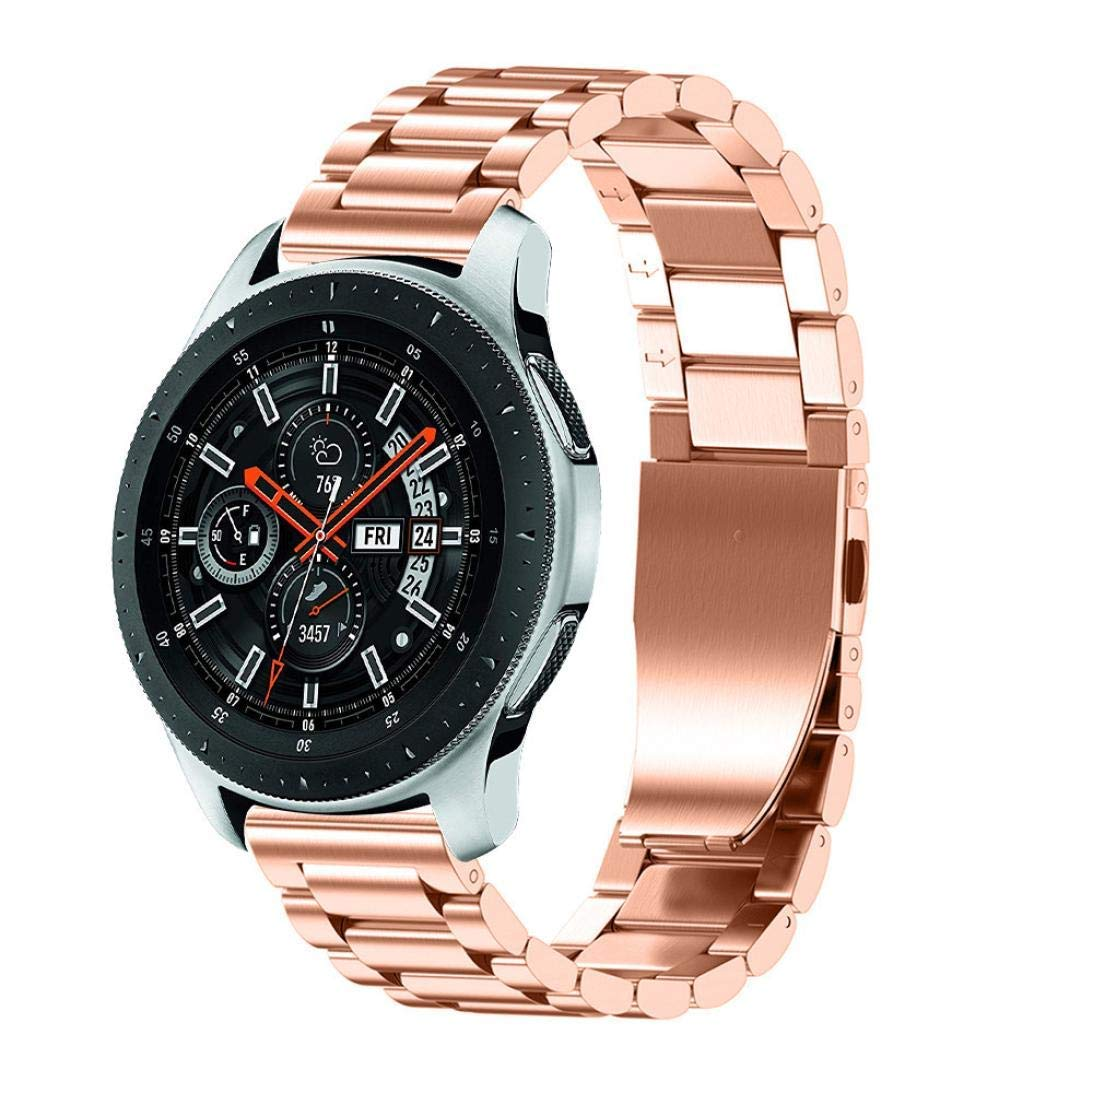 Galaxy Watch 46mm Bands,AutumnFall Luxury Stainless Steel Wristband Replacement Strap with Adjust Repair Tool for Samsung Galaxy Watch 46mm (Rose Gold)